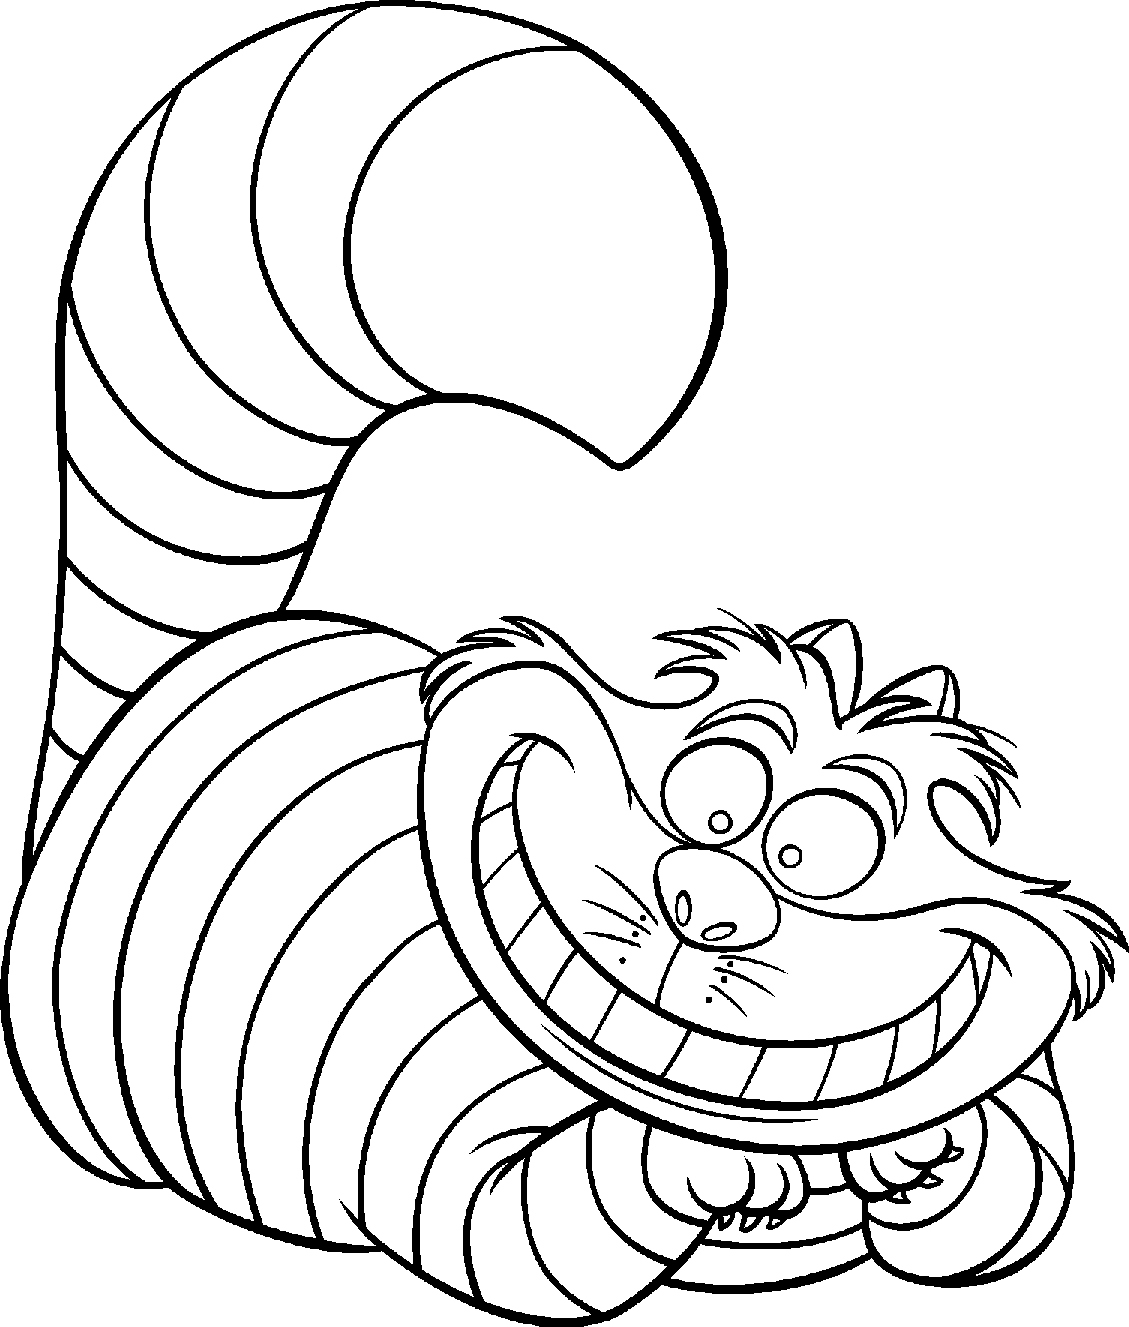 coloring pages disney - photo#7